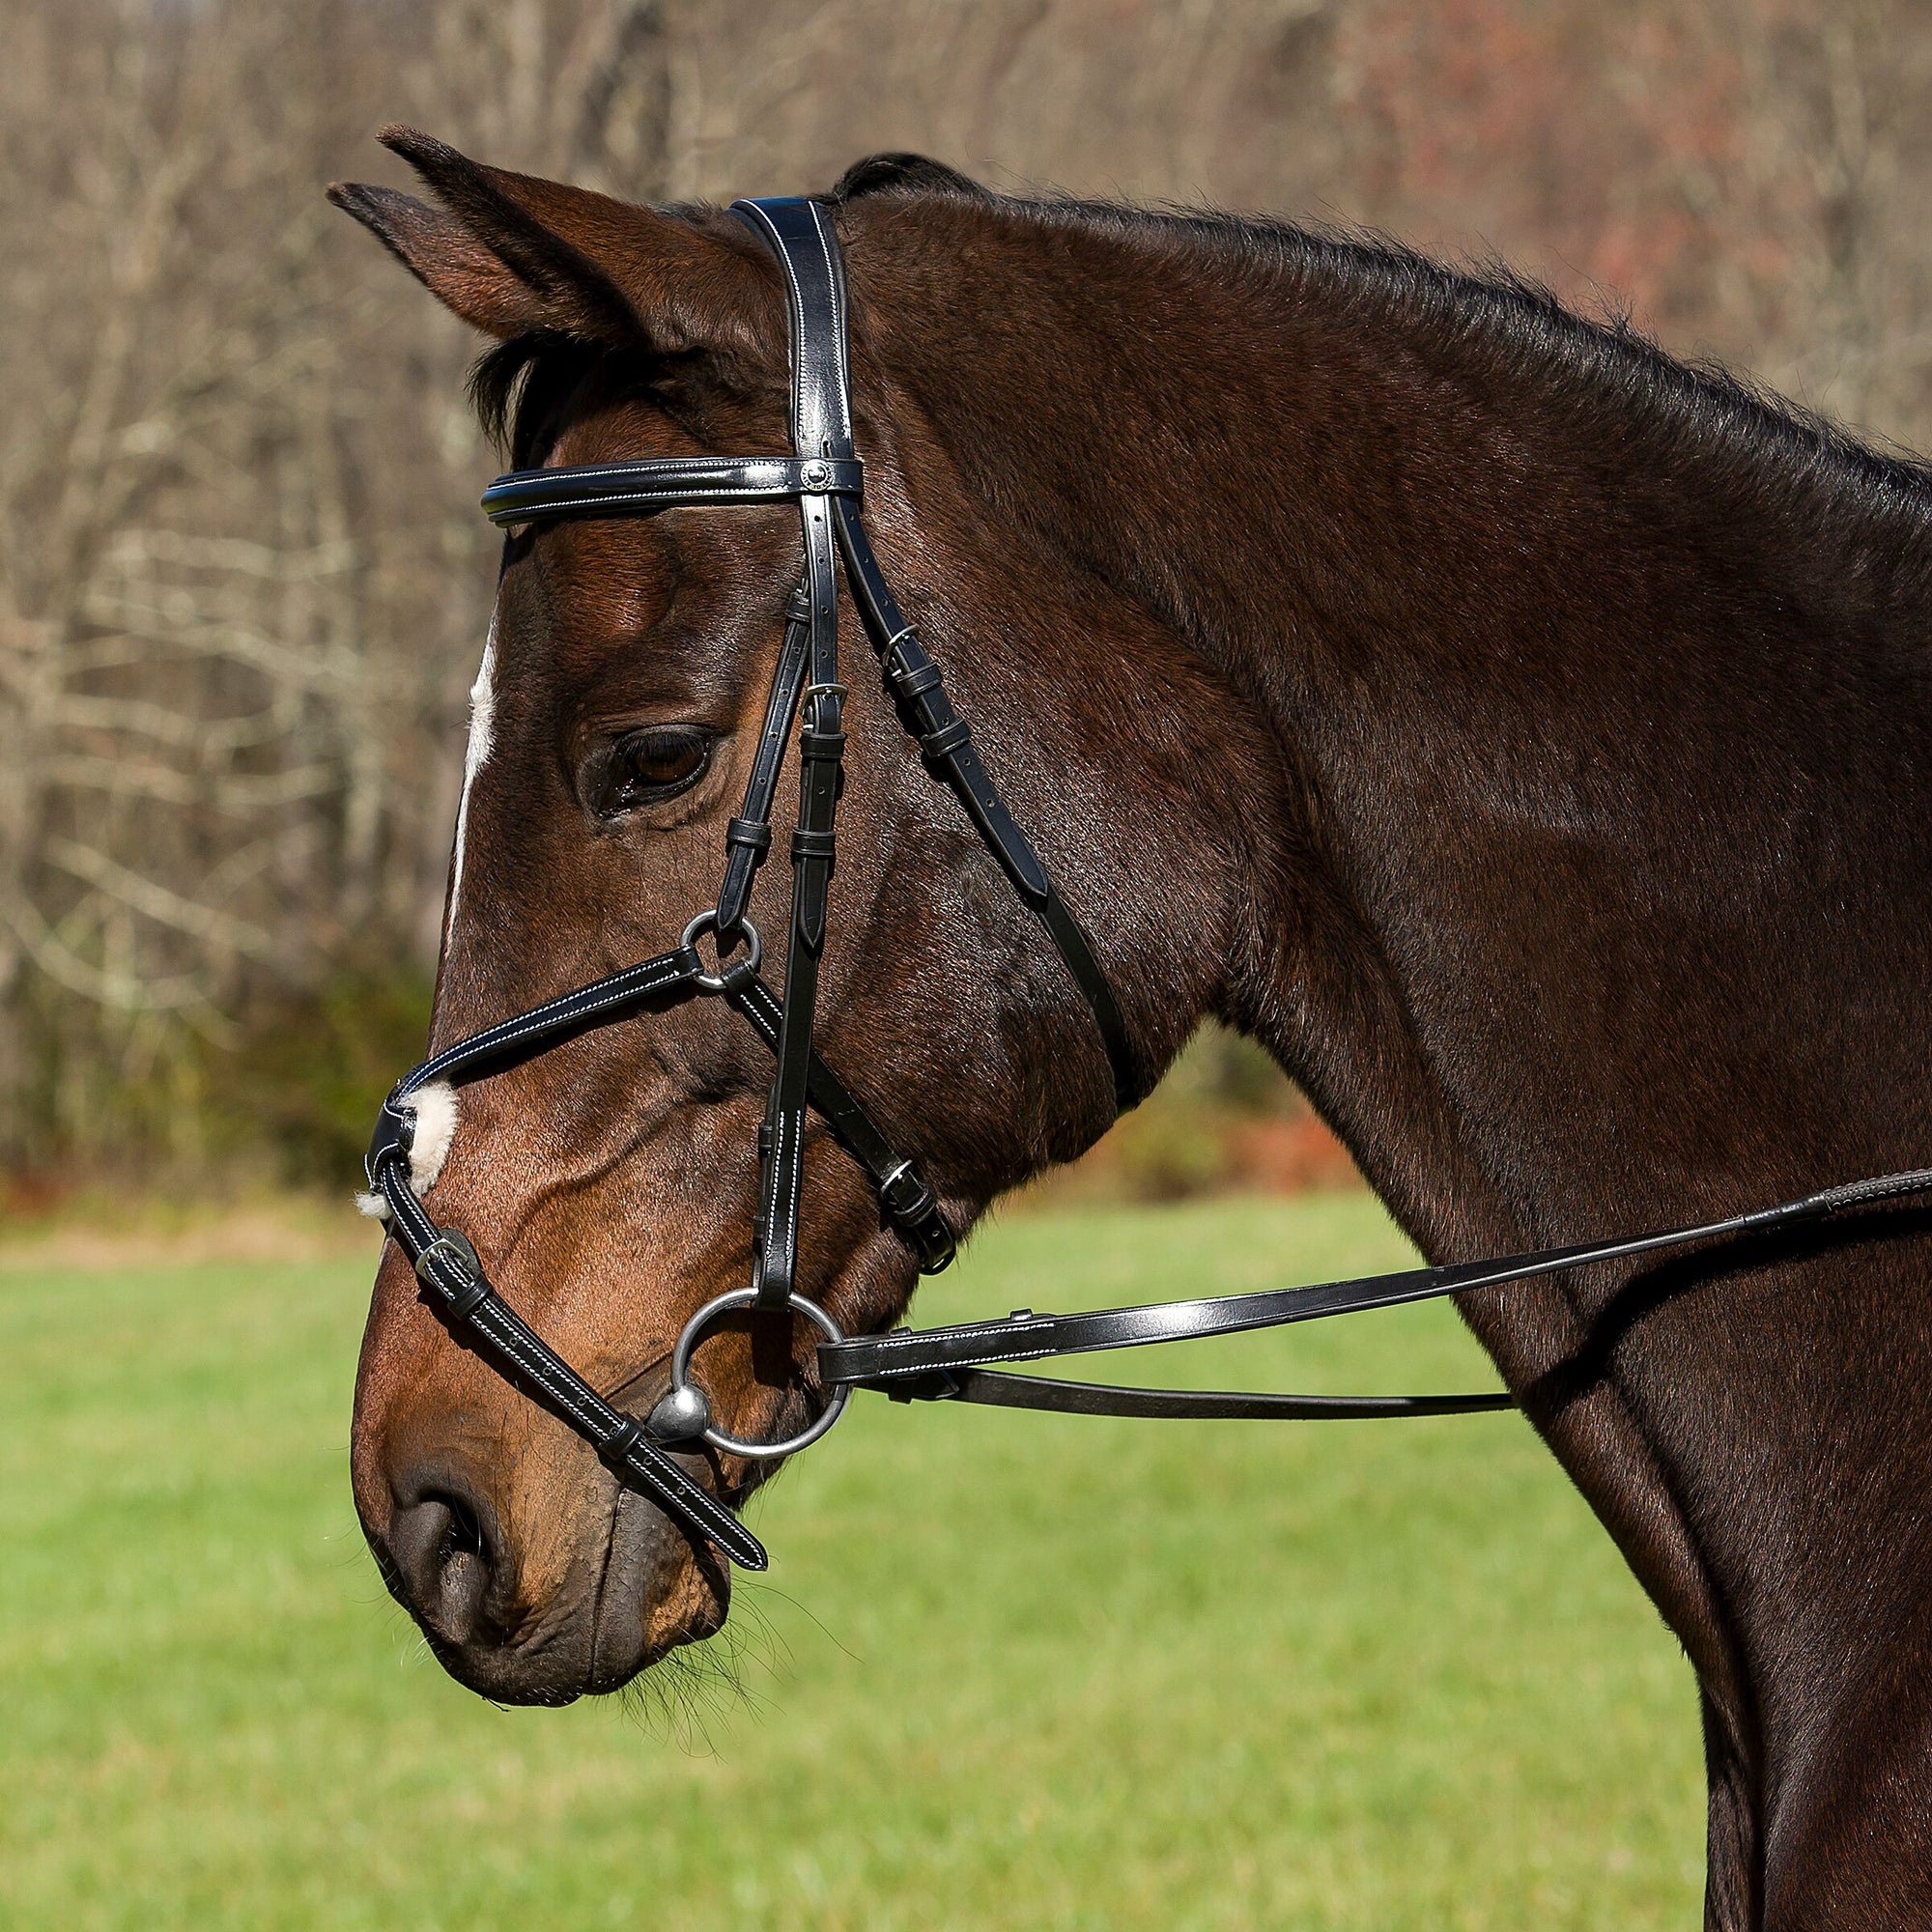 Pro Mono Crown Raised Figure Eight Bridle with Rubber Reins - Henri de Rivel - Breeches.com